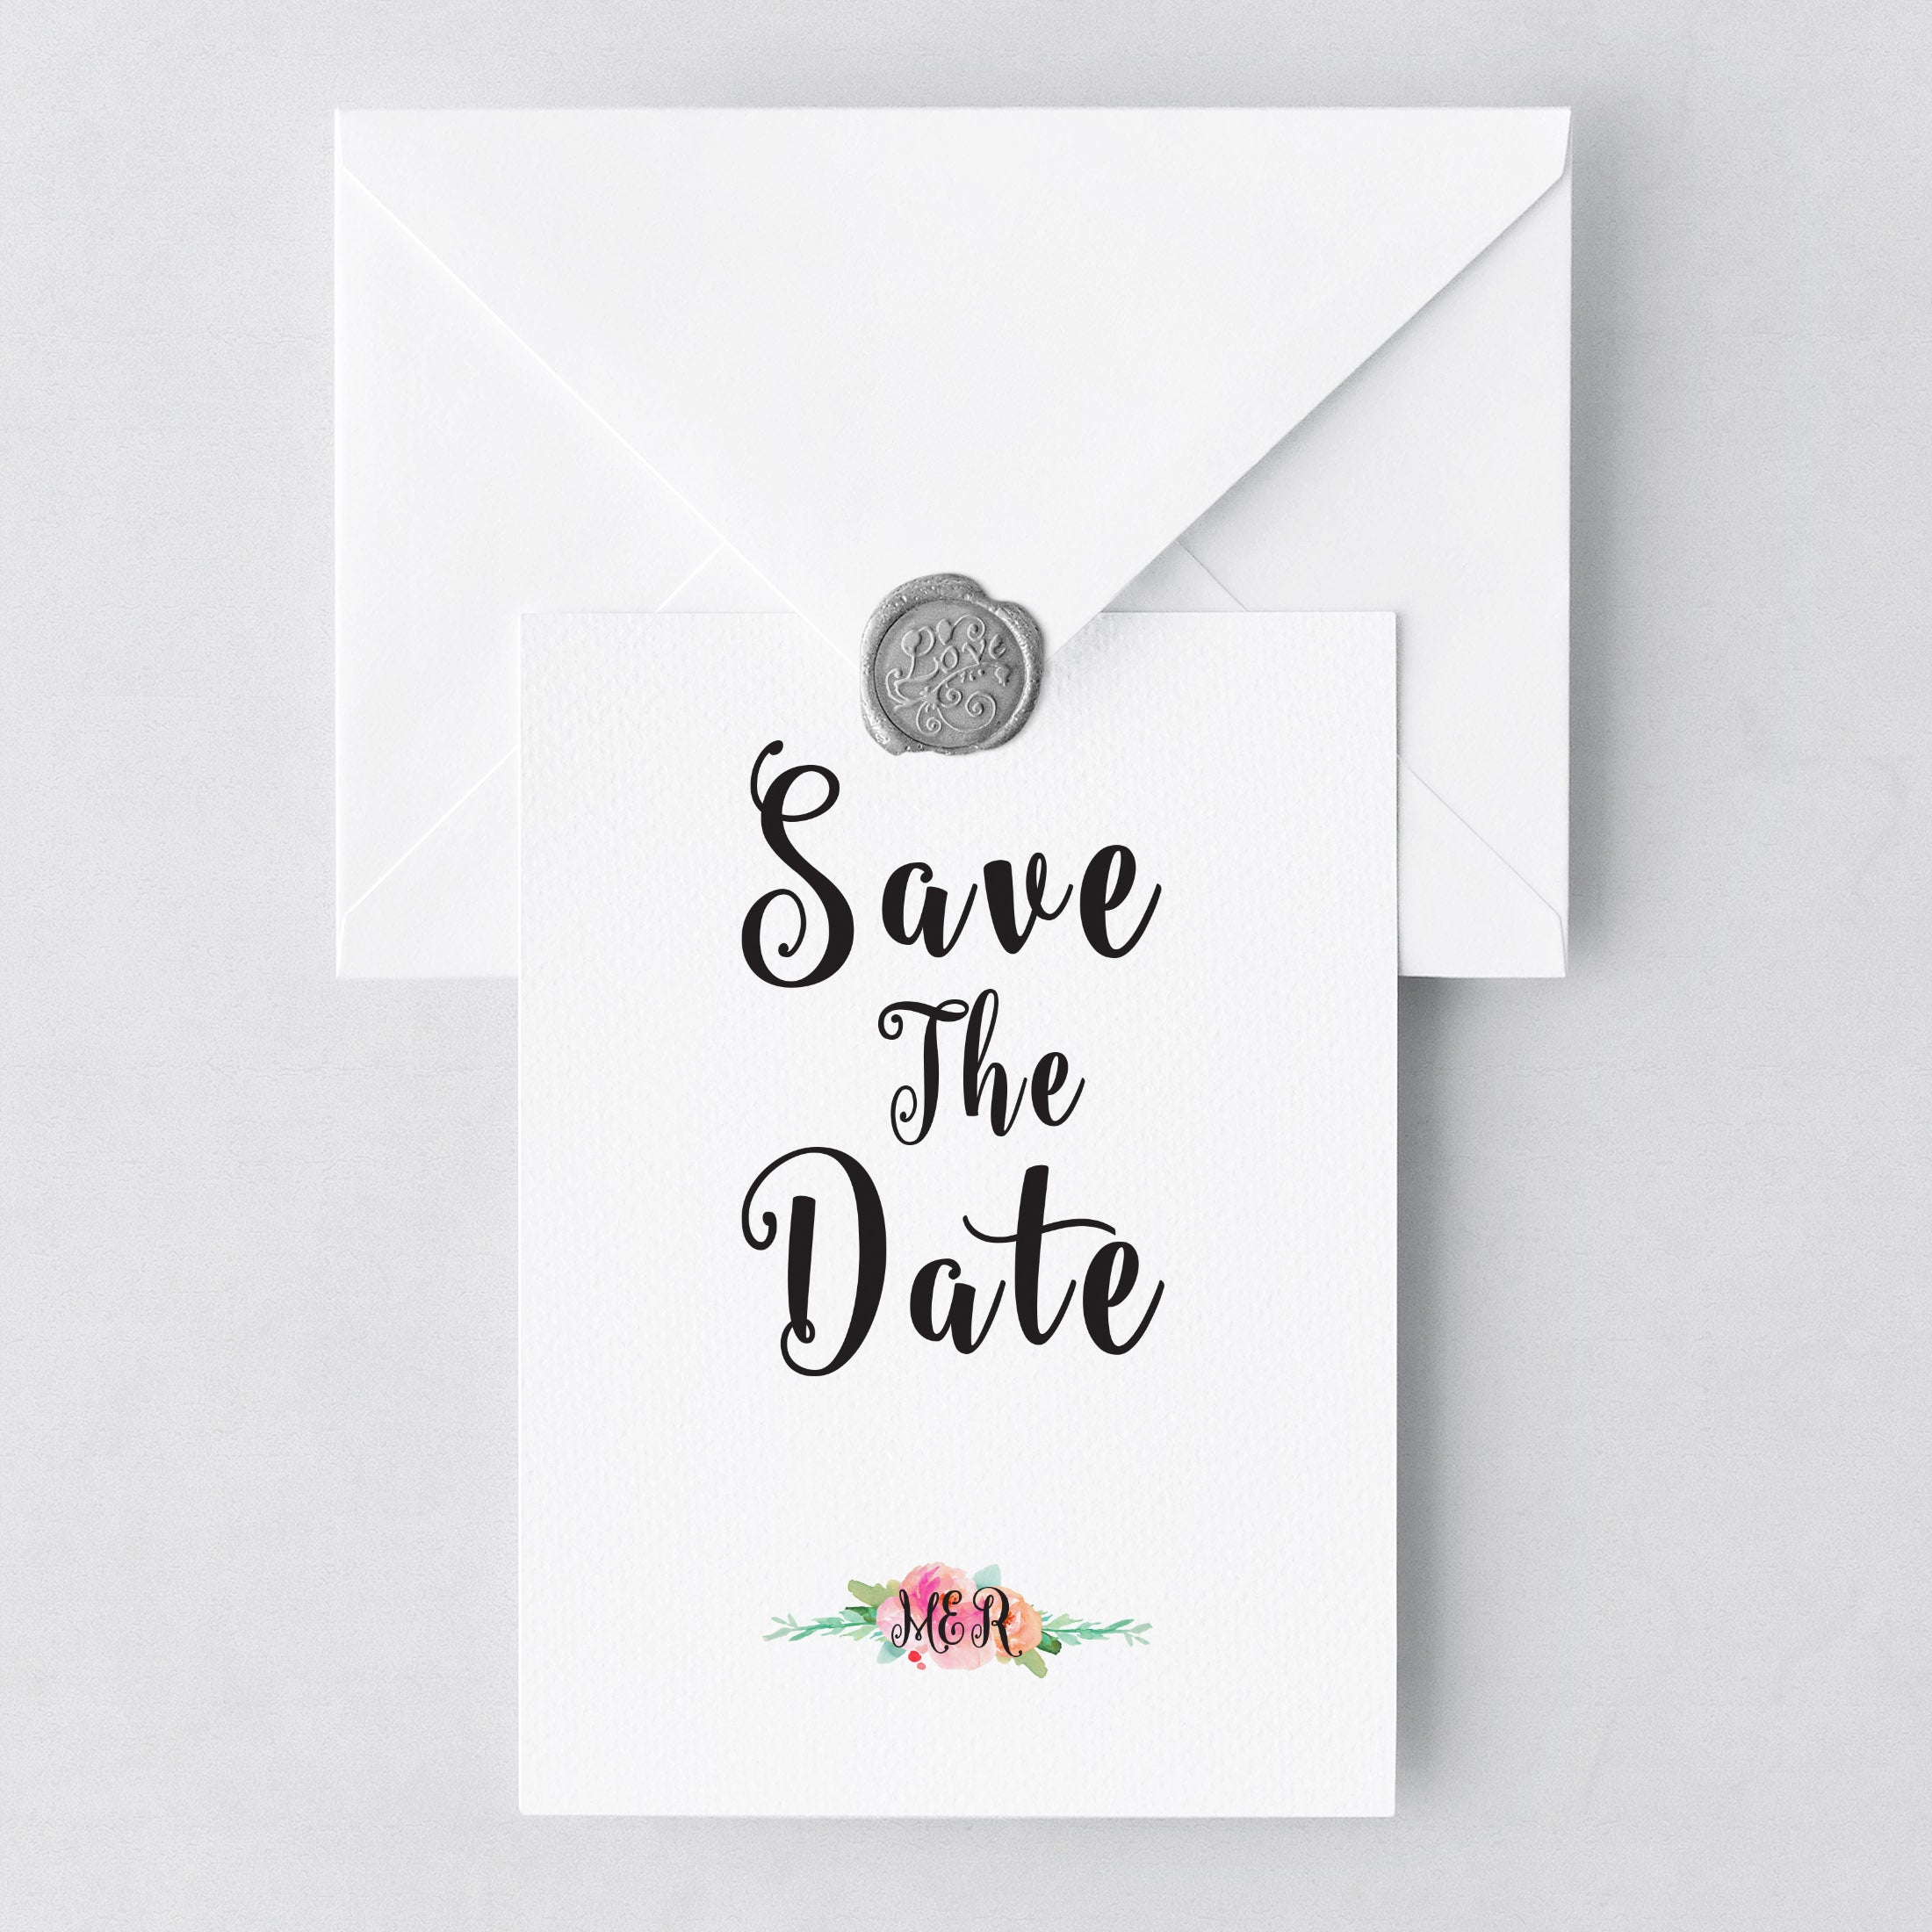 garden party save the date made by lauren